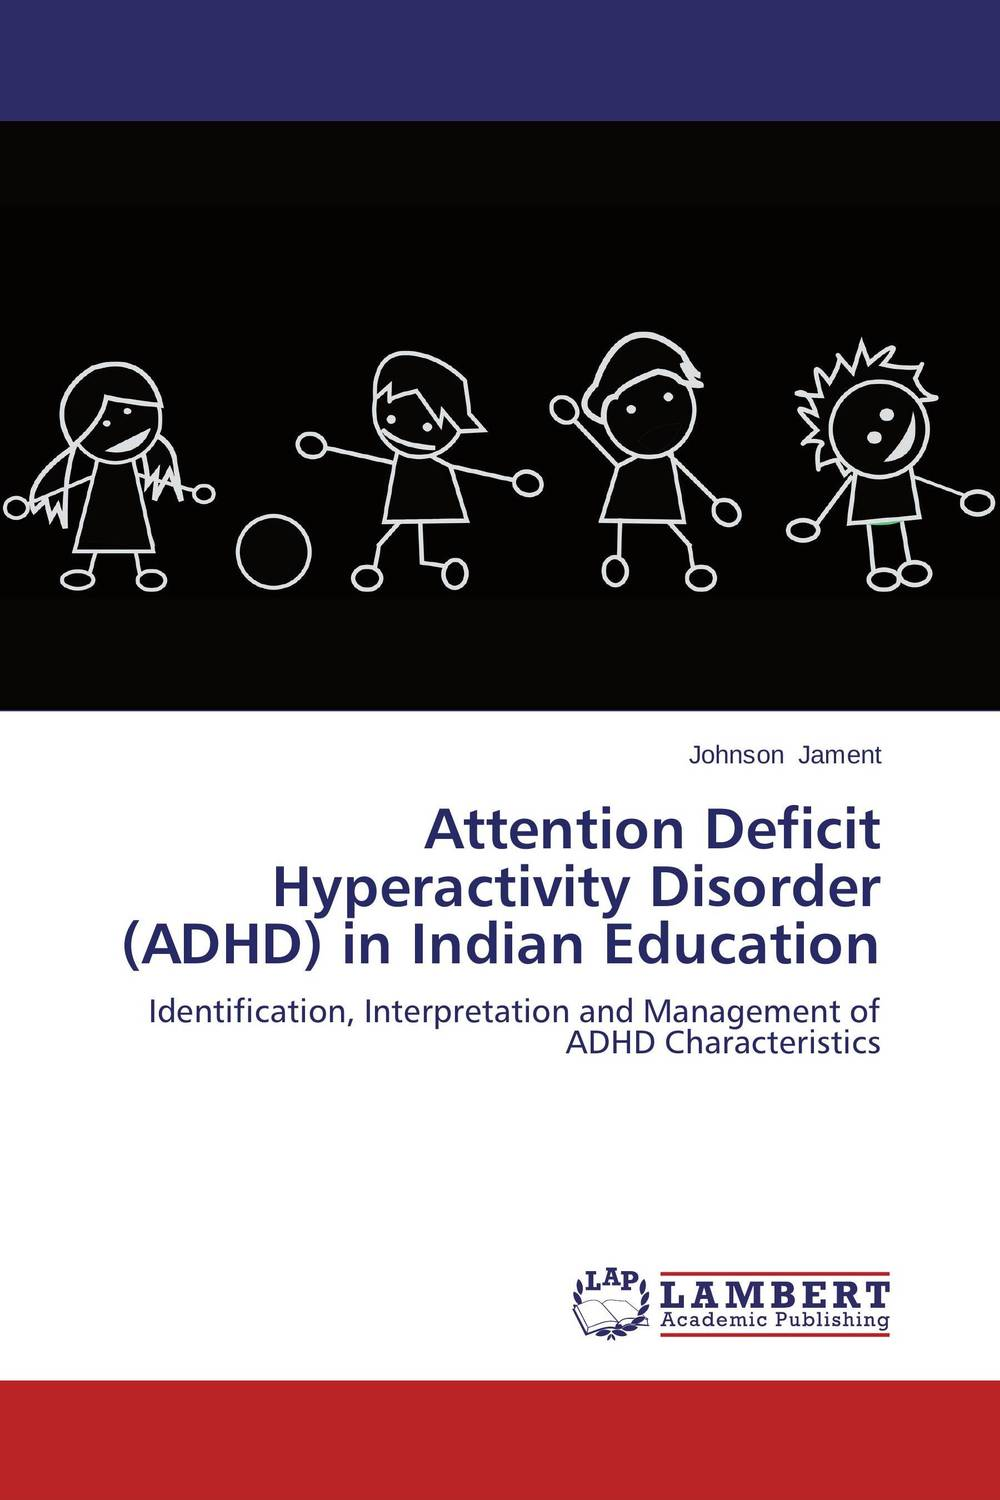 Attention Deficit Hyperactivity Disorder (ADHD) in  Indian Education margaretha dramsdahl adults with attention deficit hyperactivity disorder